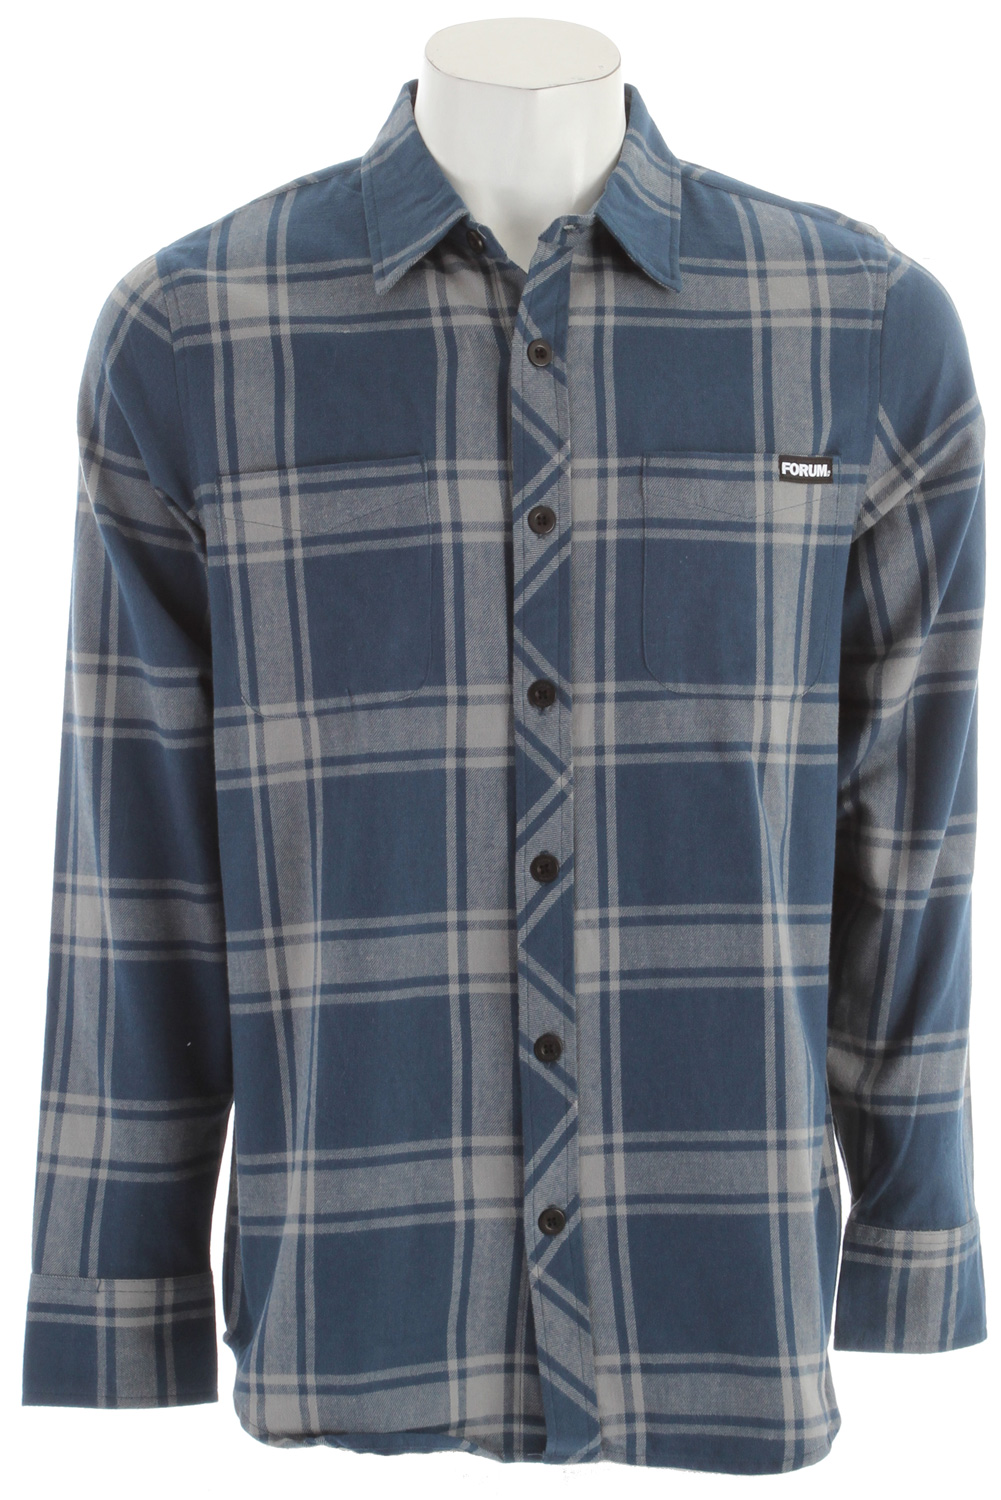 Forum Yokel Flannel Brigade Blue - $16.95